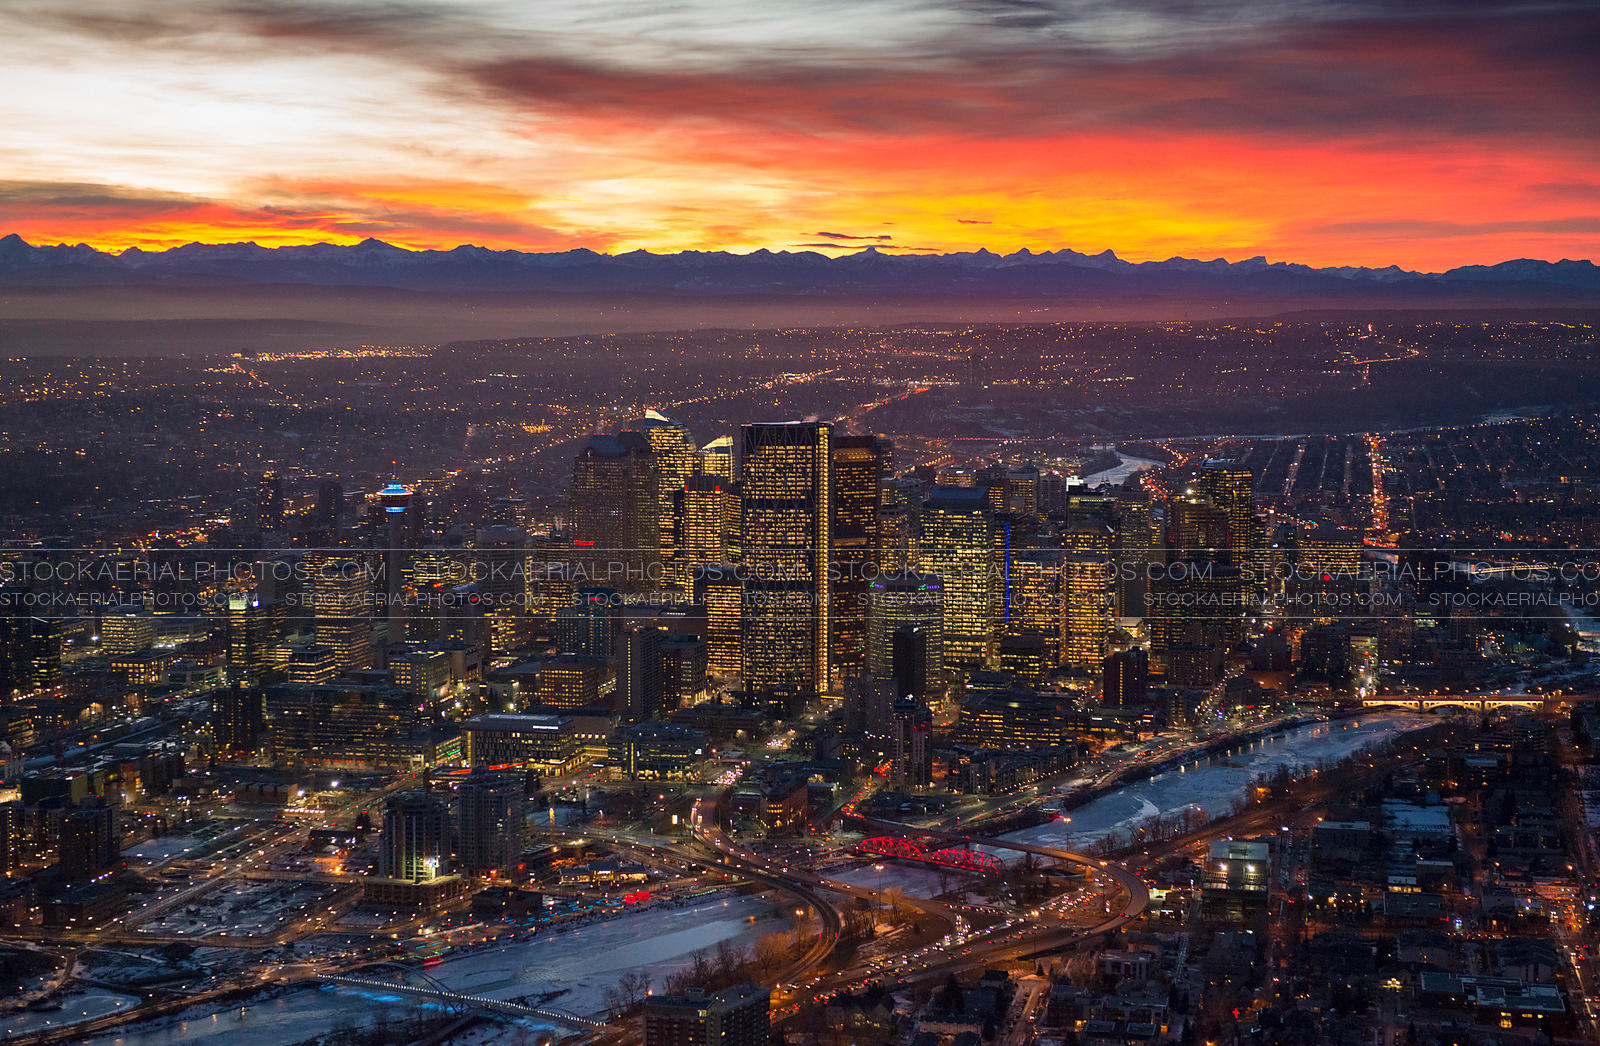 Calgary City Skyline at Sunset